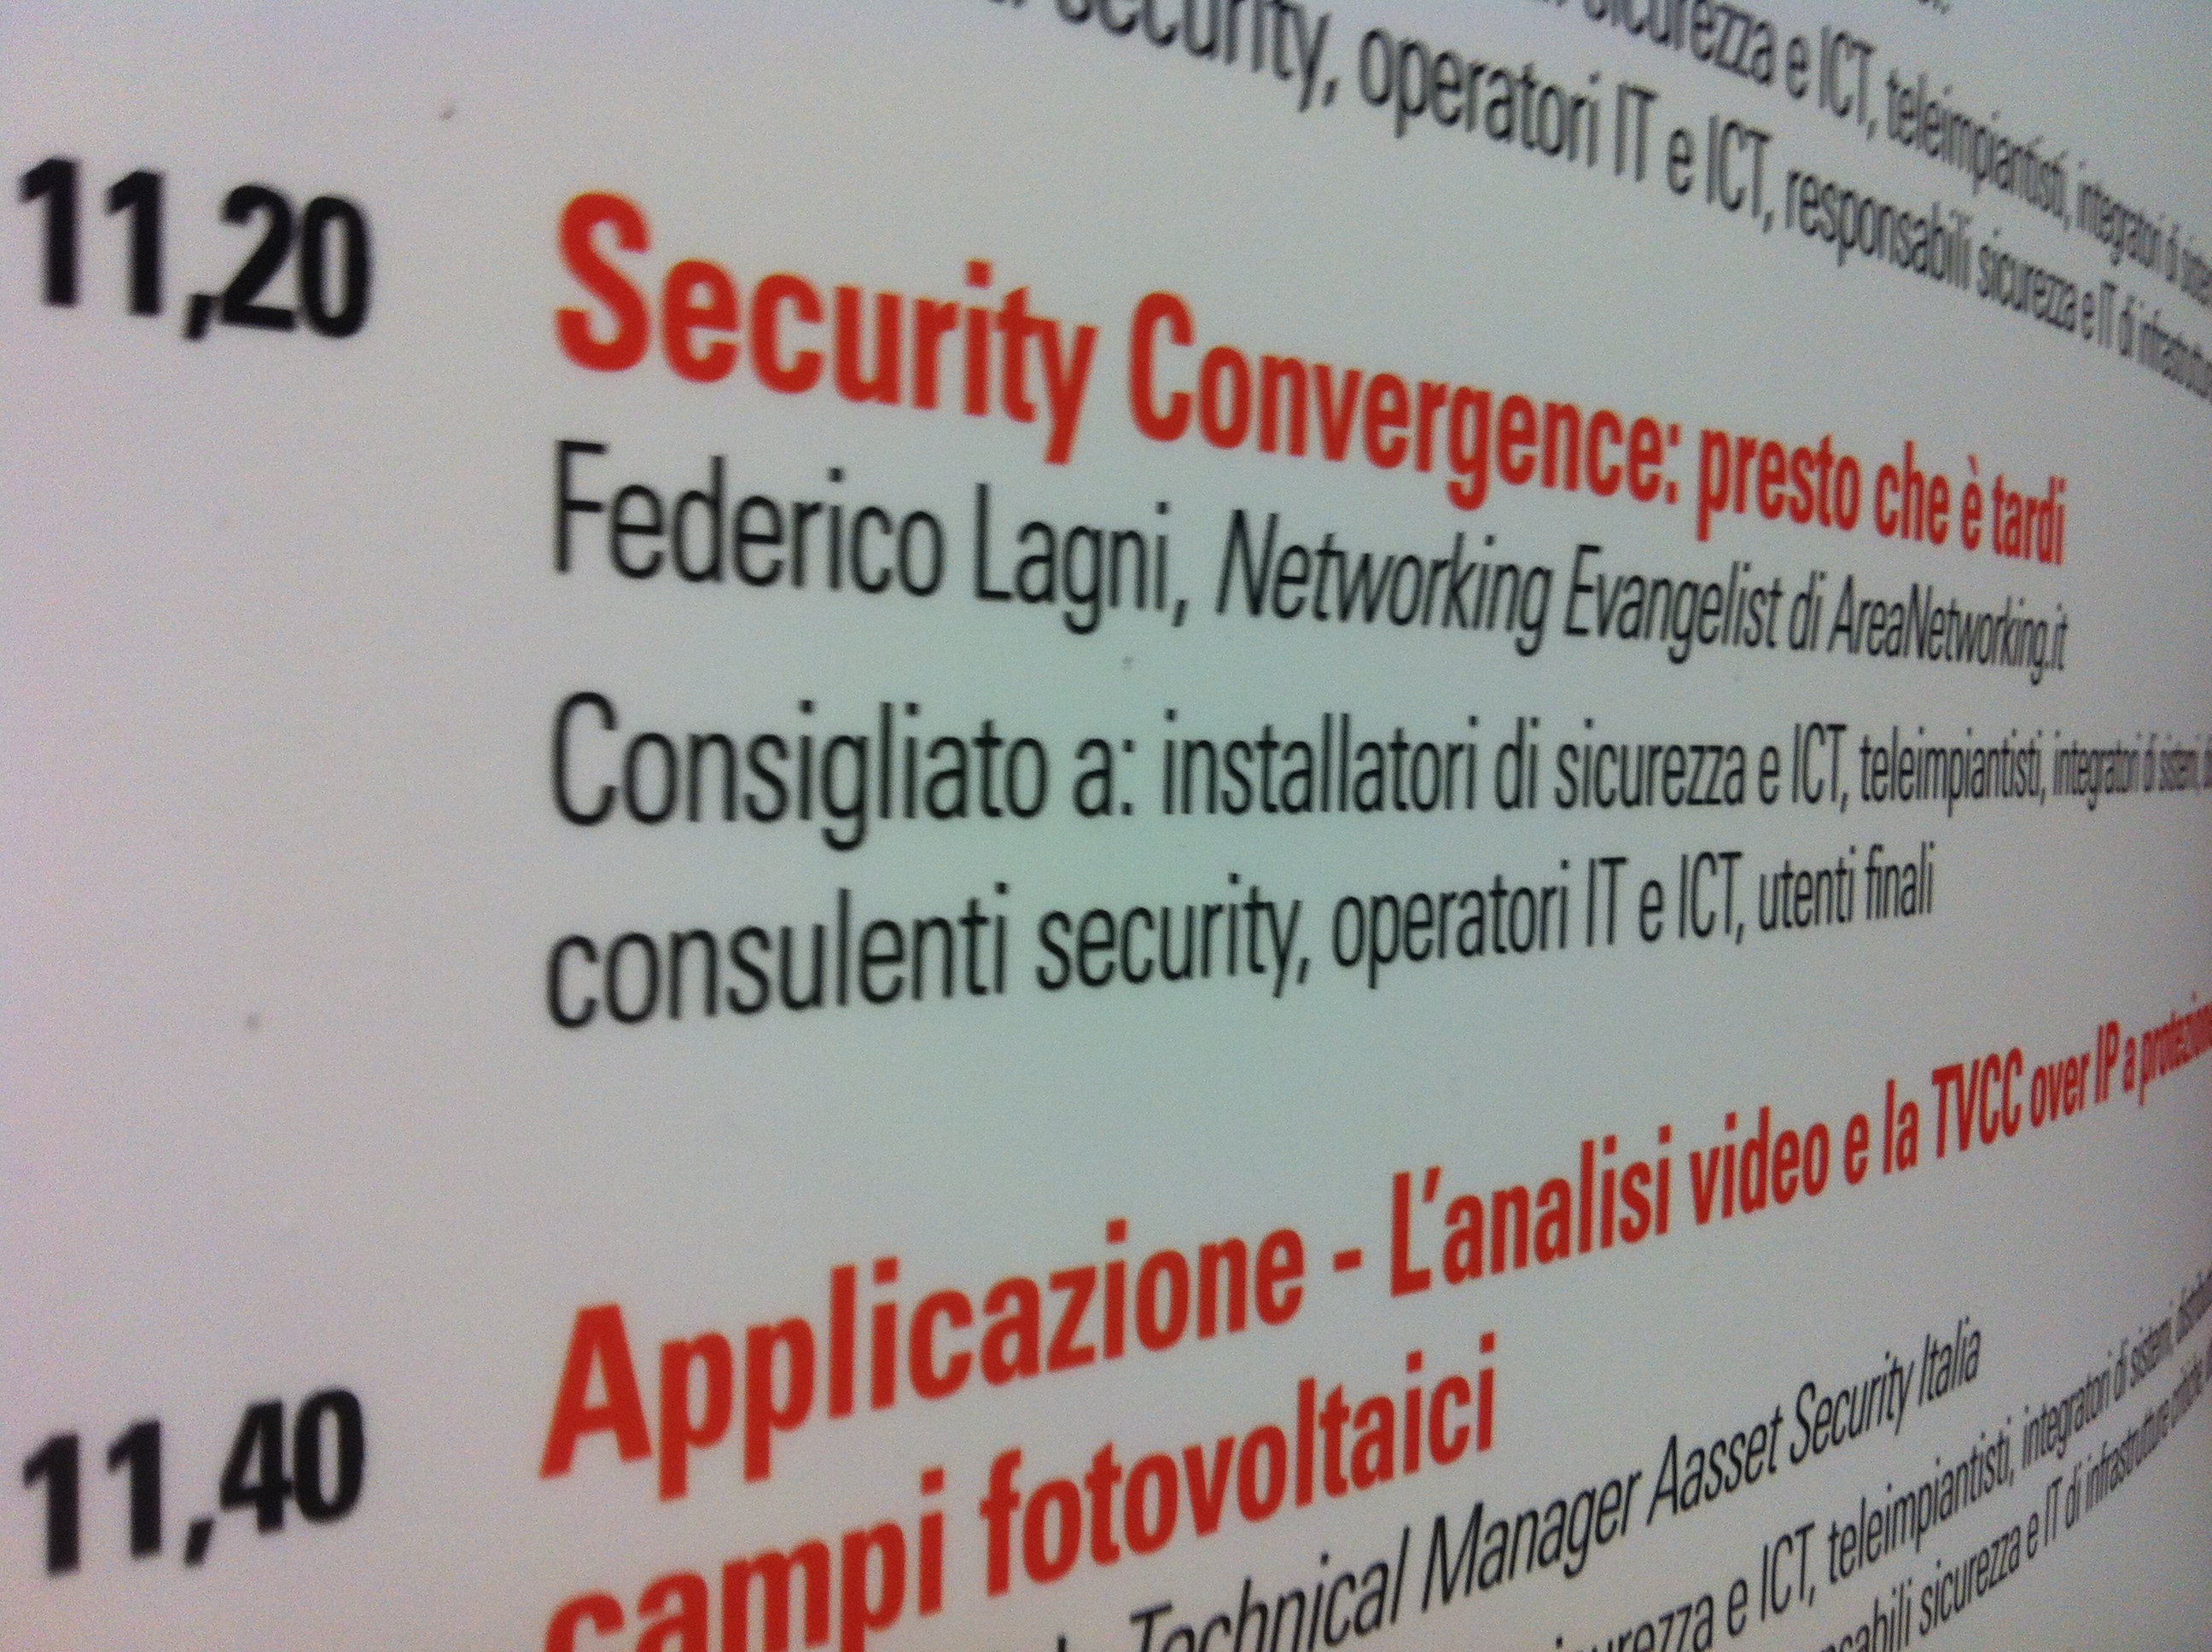 Security Convergence: IP Security Forum 2012, Bologna